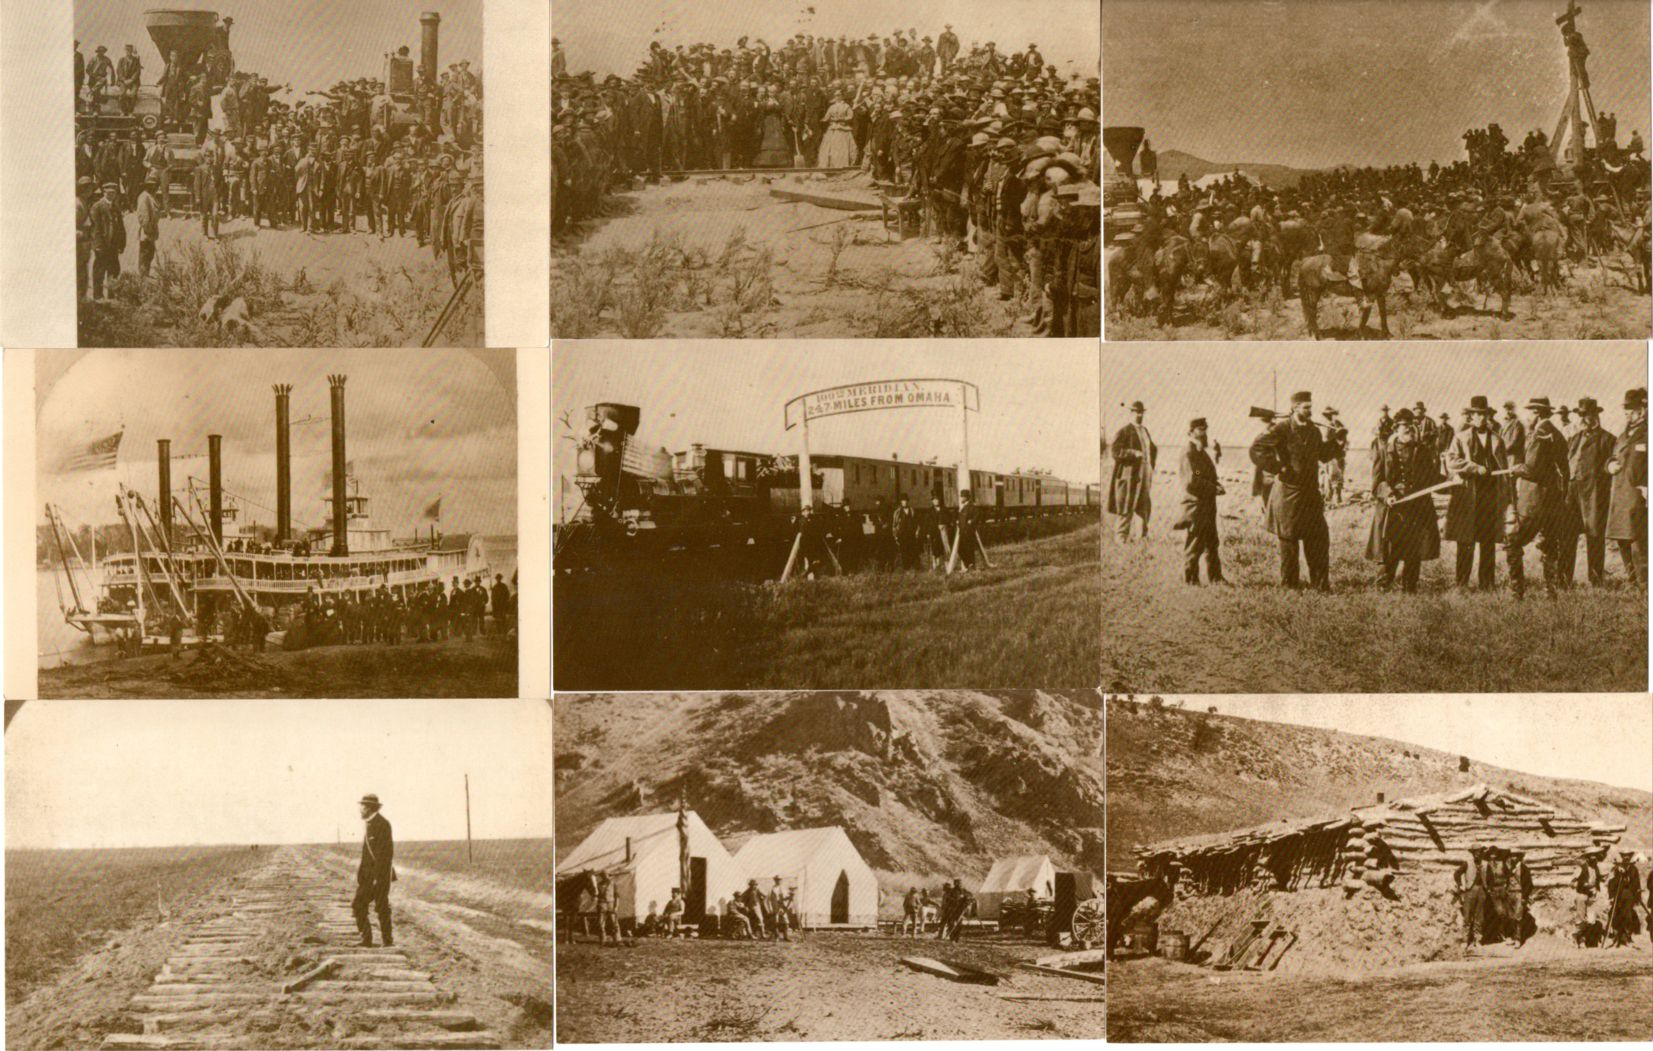 (50 cards) Railway Train History by Master Photographers - Complete Set of 50